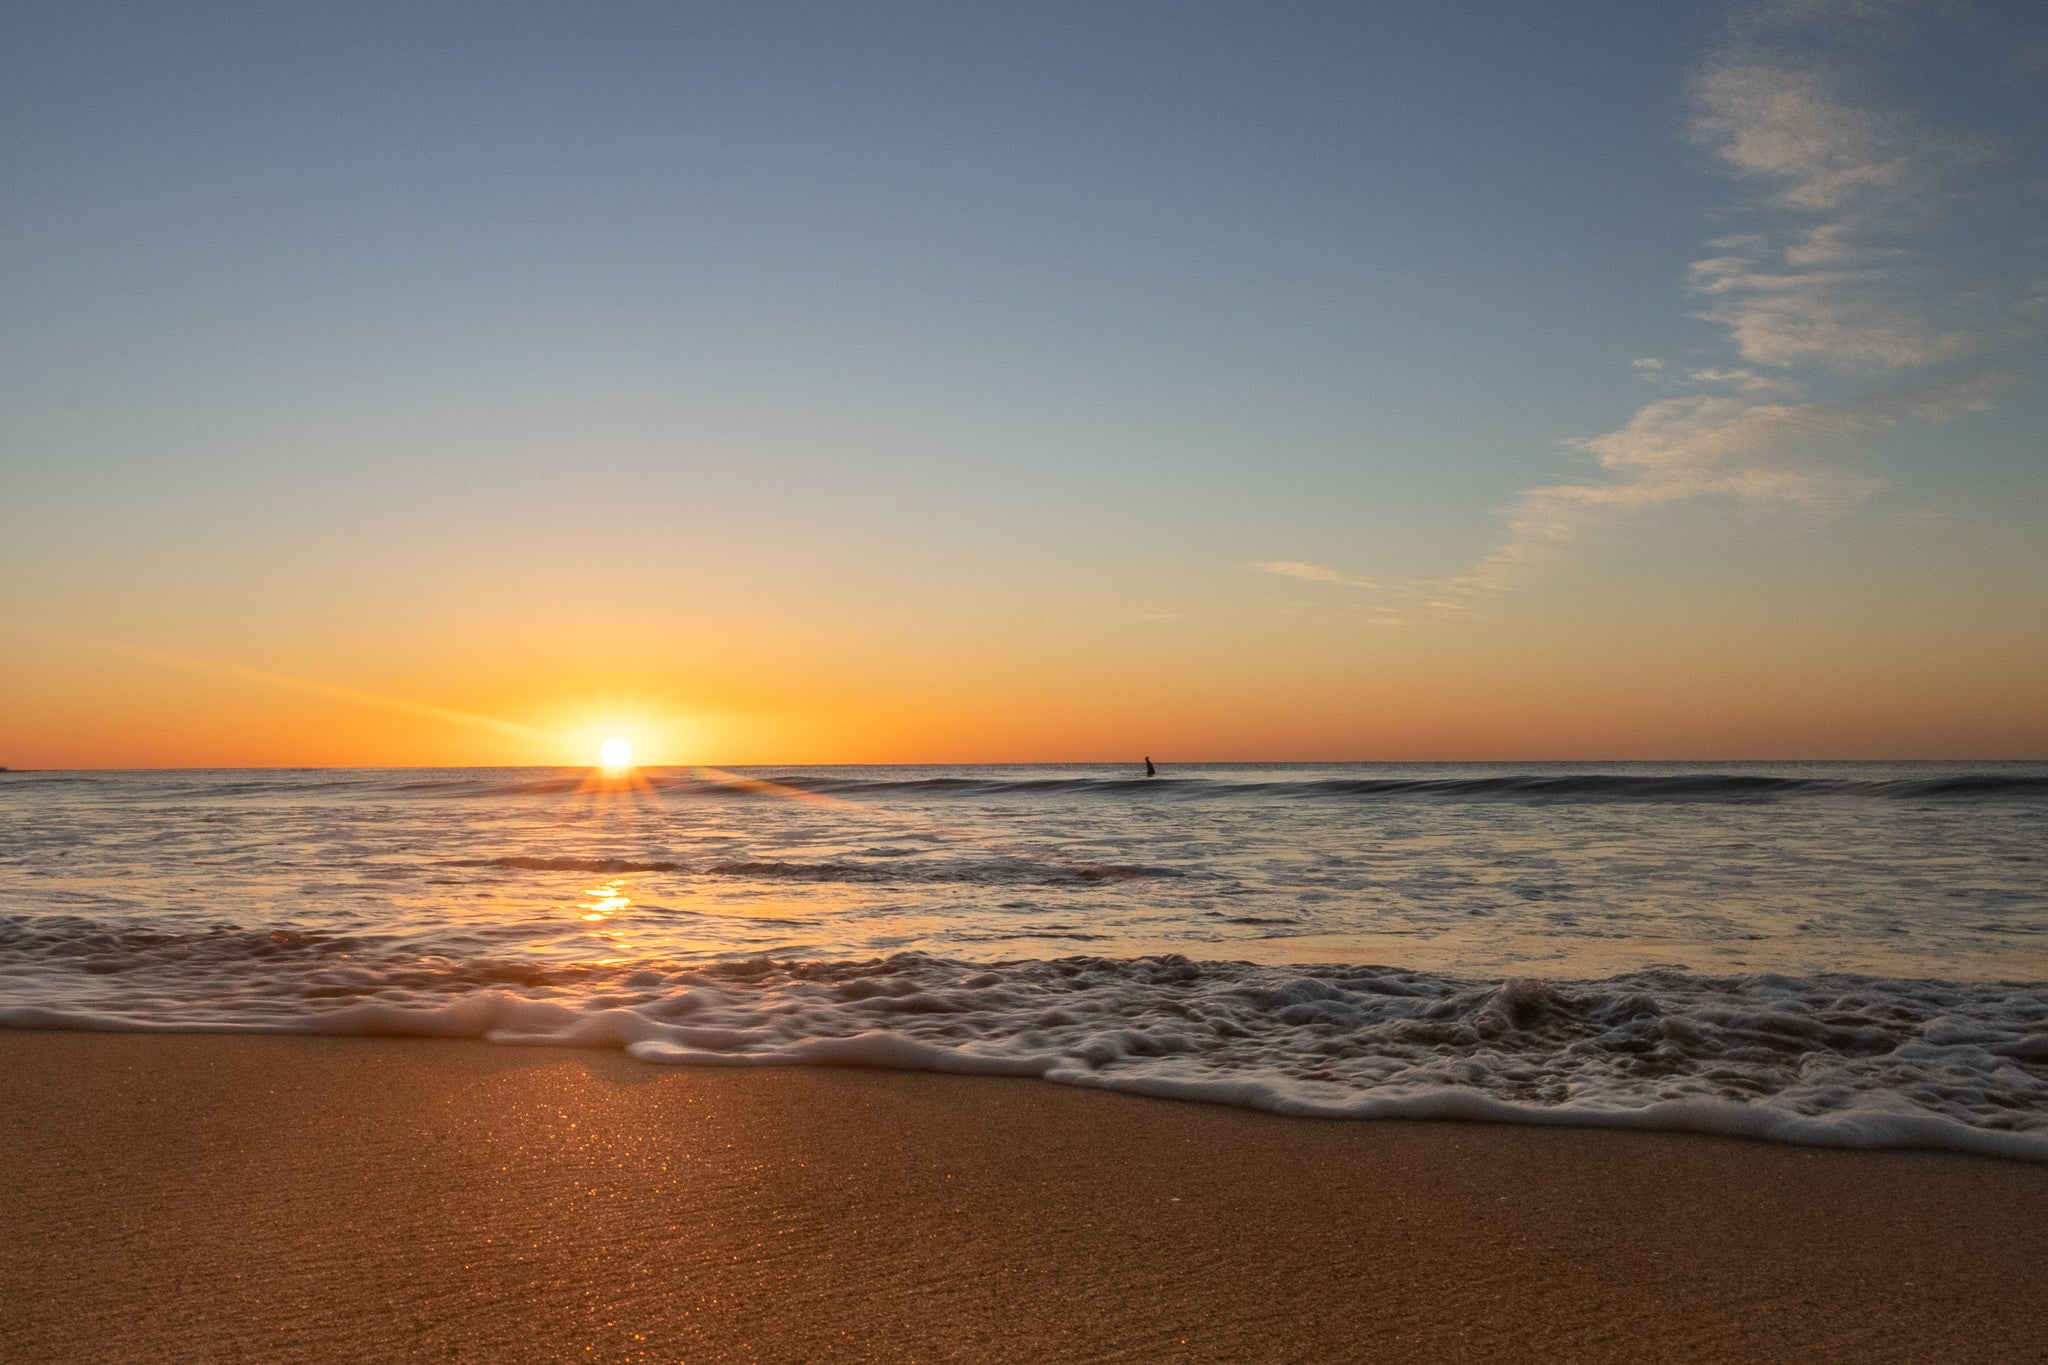 Sunrise photo from the 12th July 2019 at Manly beach in Sydney